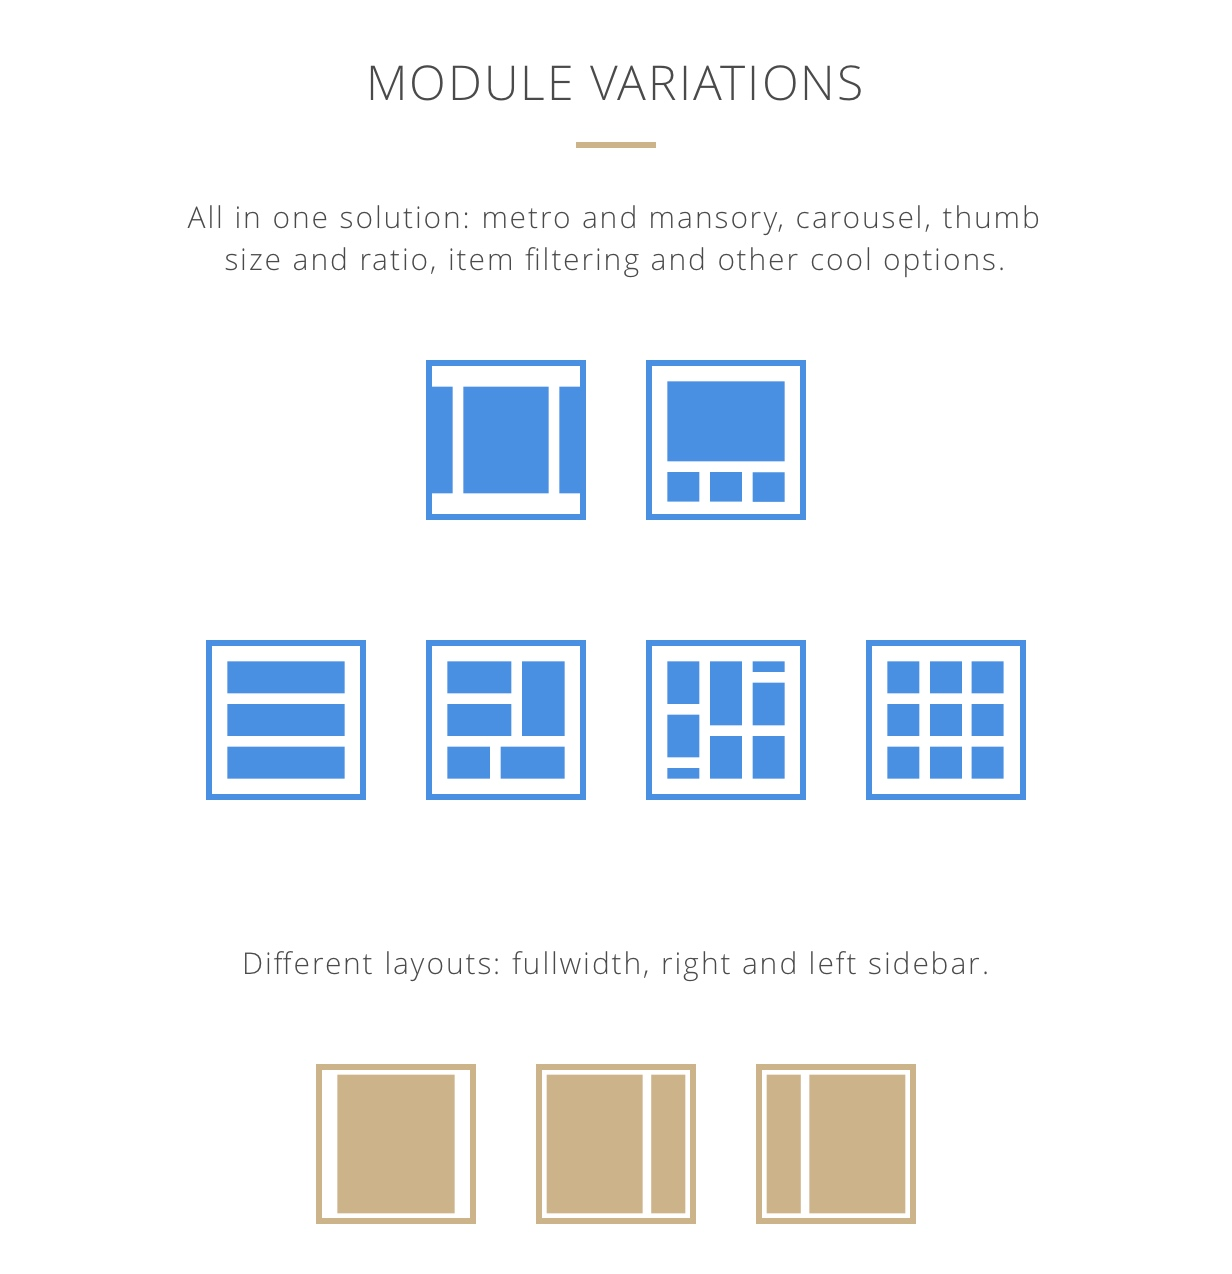 Module variations: metro and masonry, carusel, tambsize and ratio, item filter and other cool options.